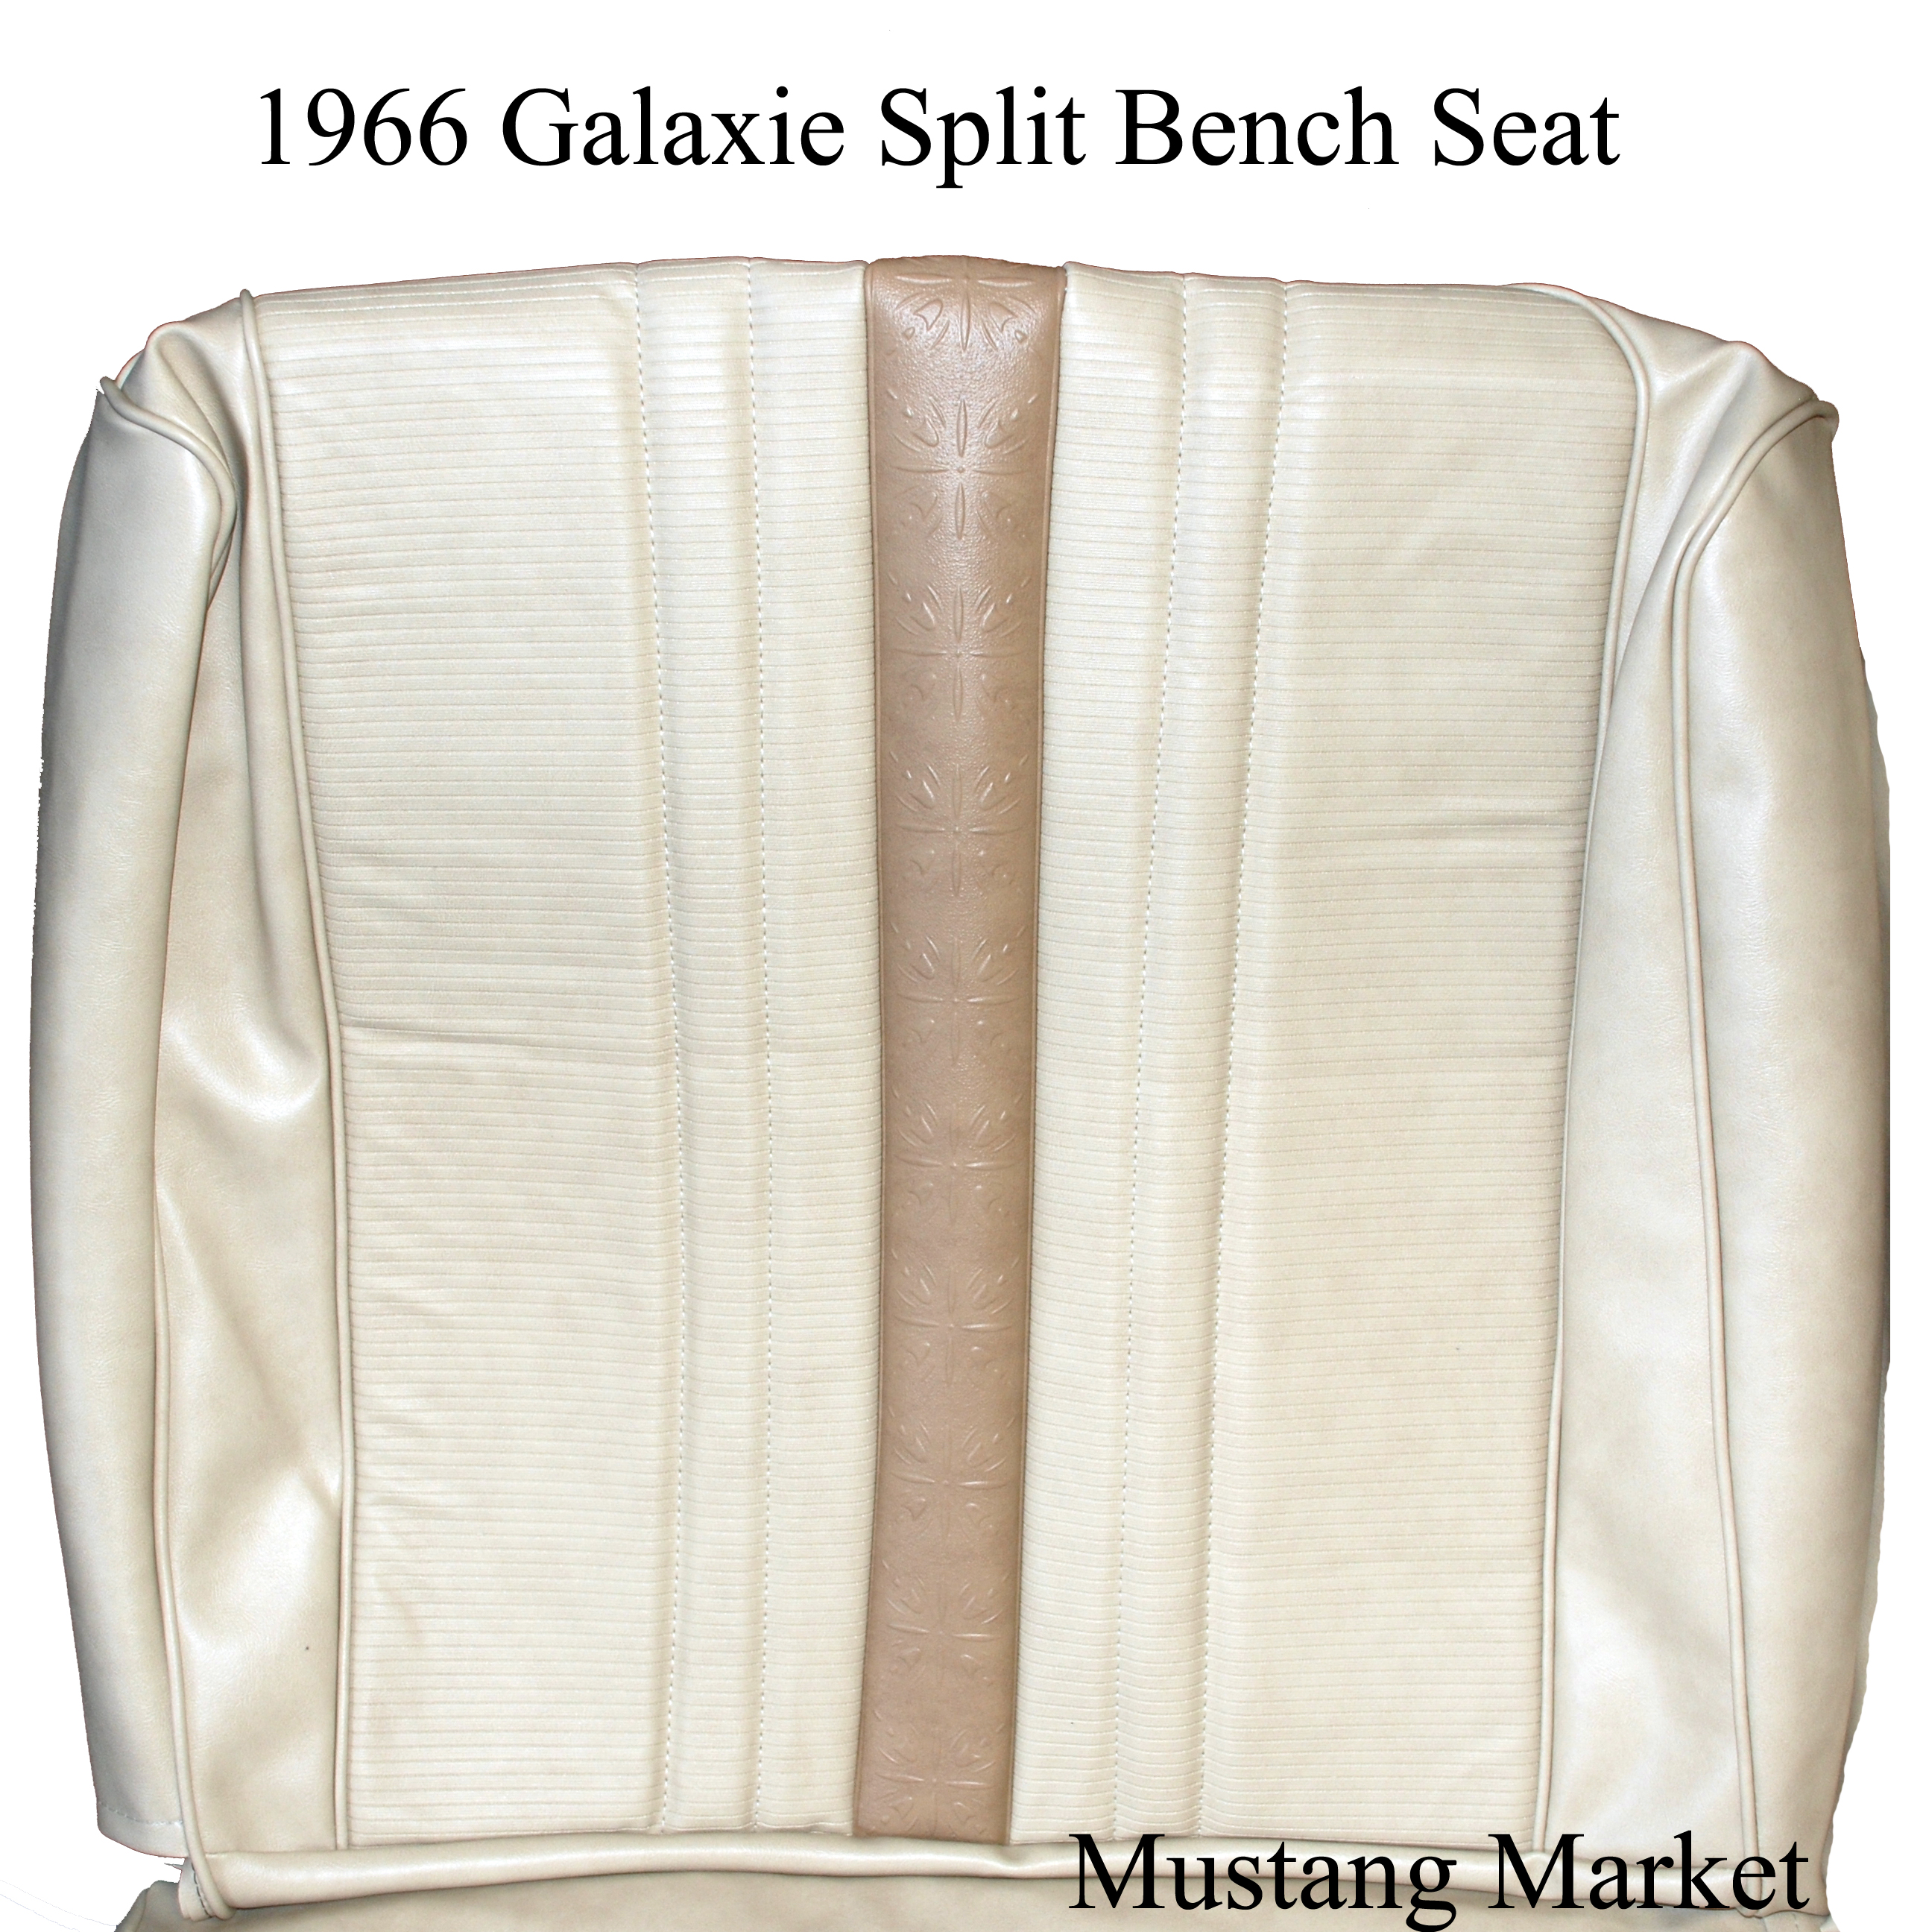 1966 Galaxie 500 Bench Seat Upholstery